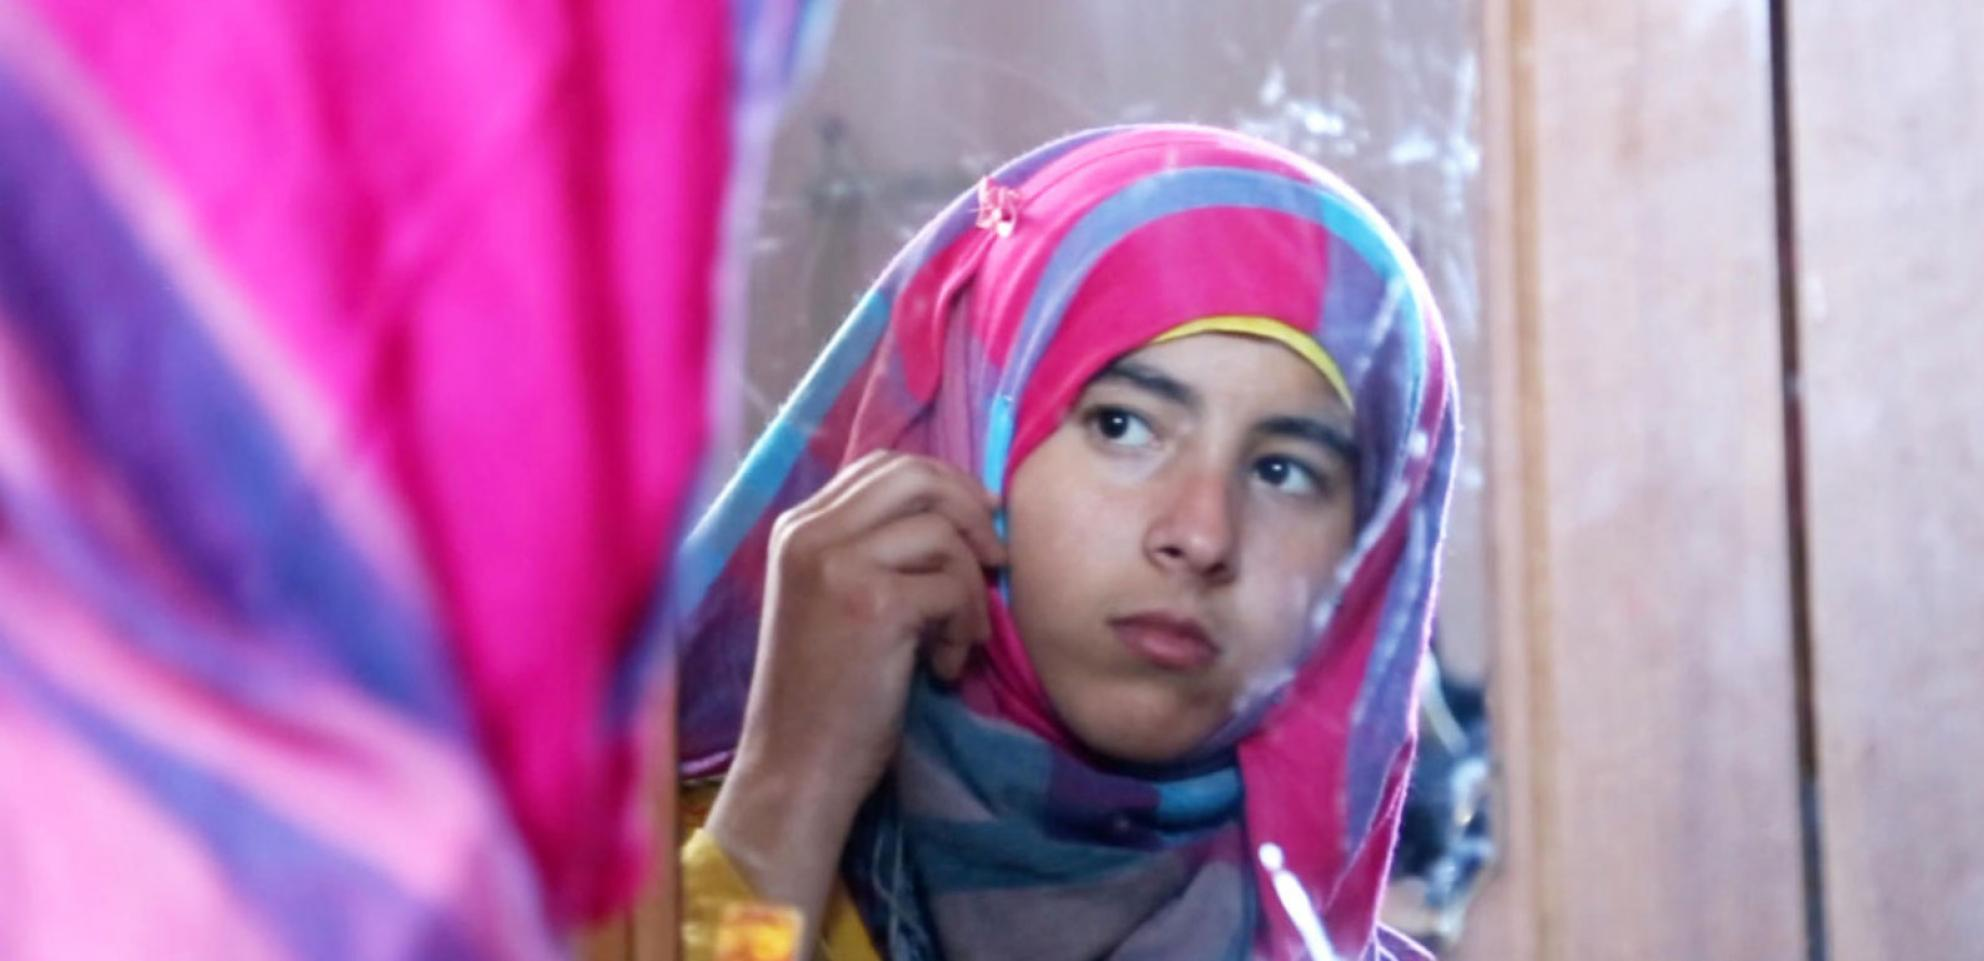 A young Muslim girl looks at herself in the mirror.